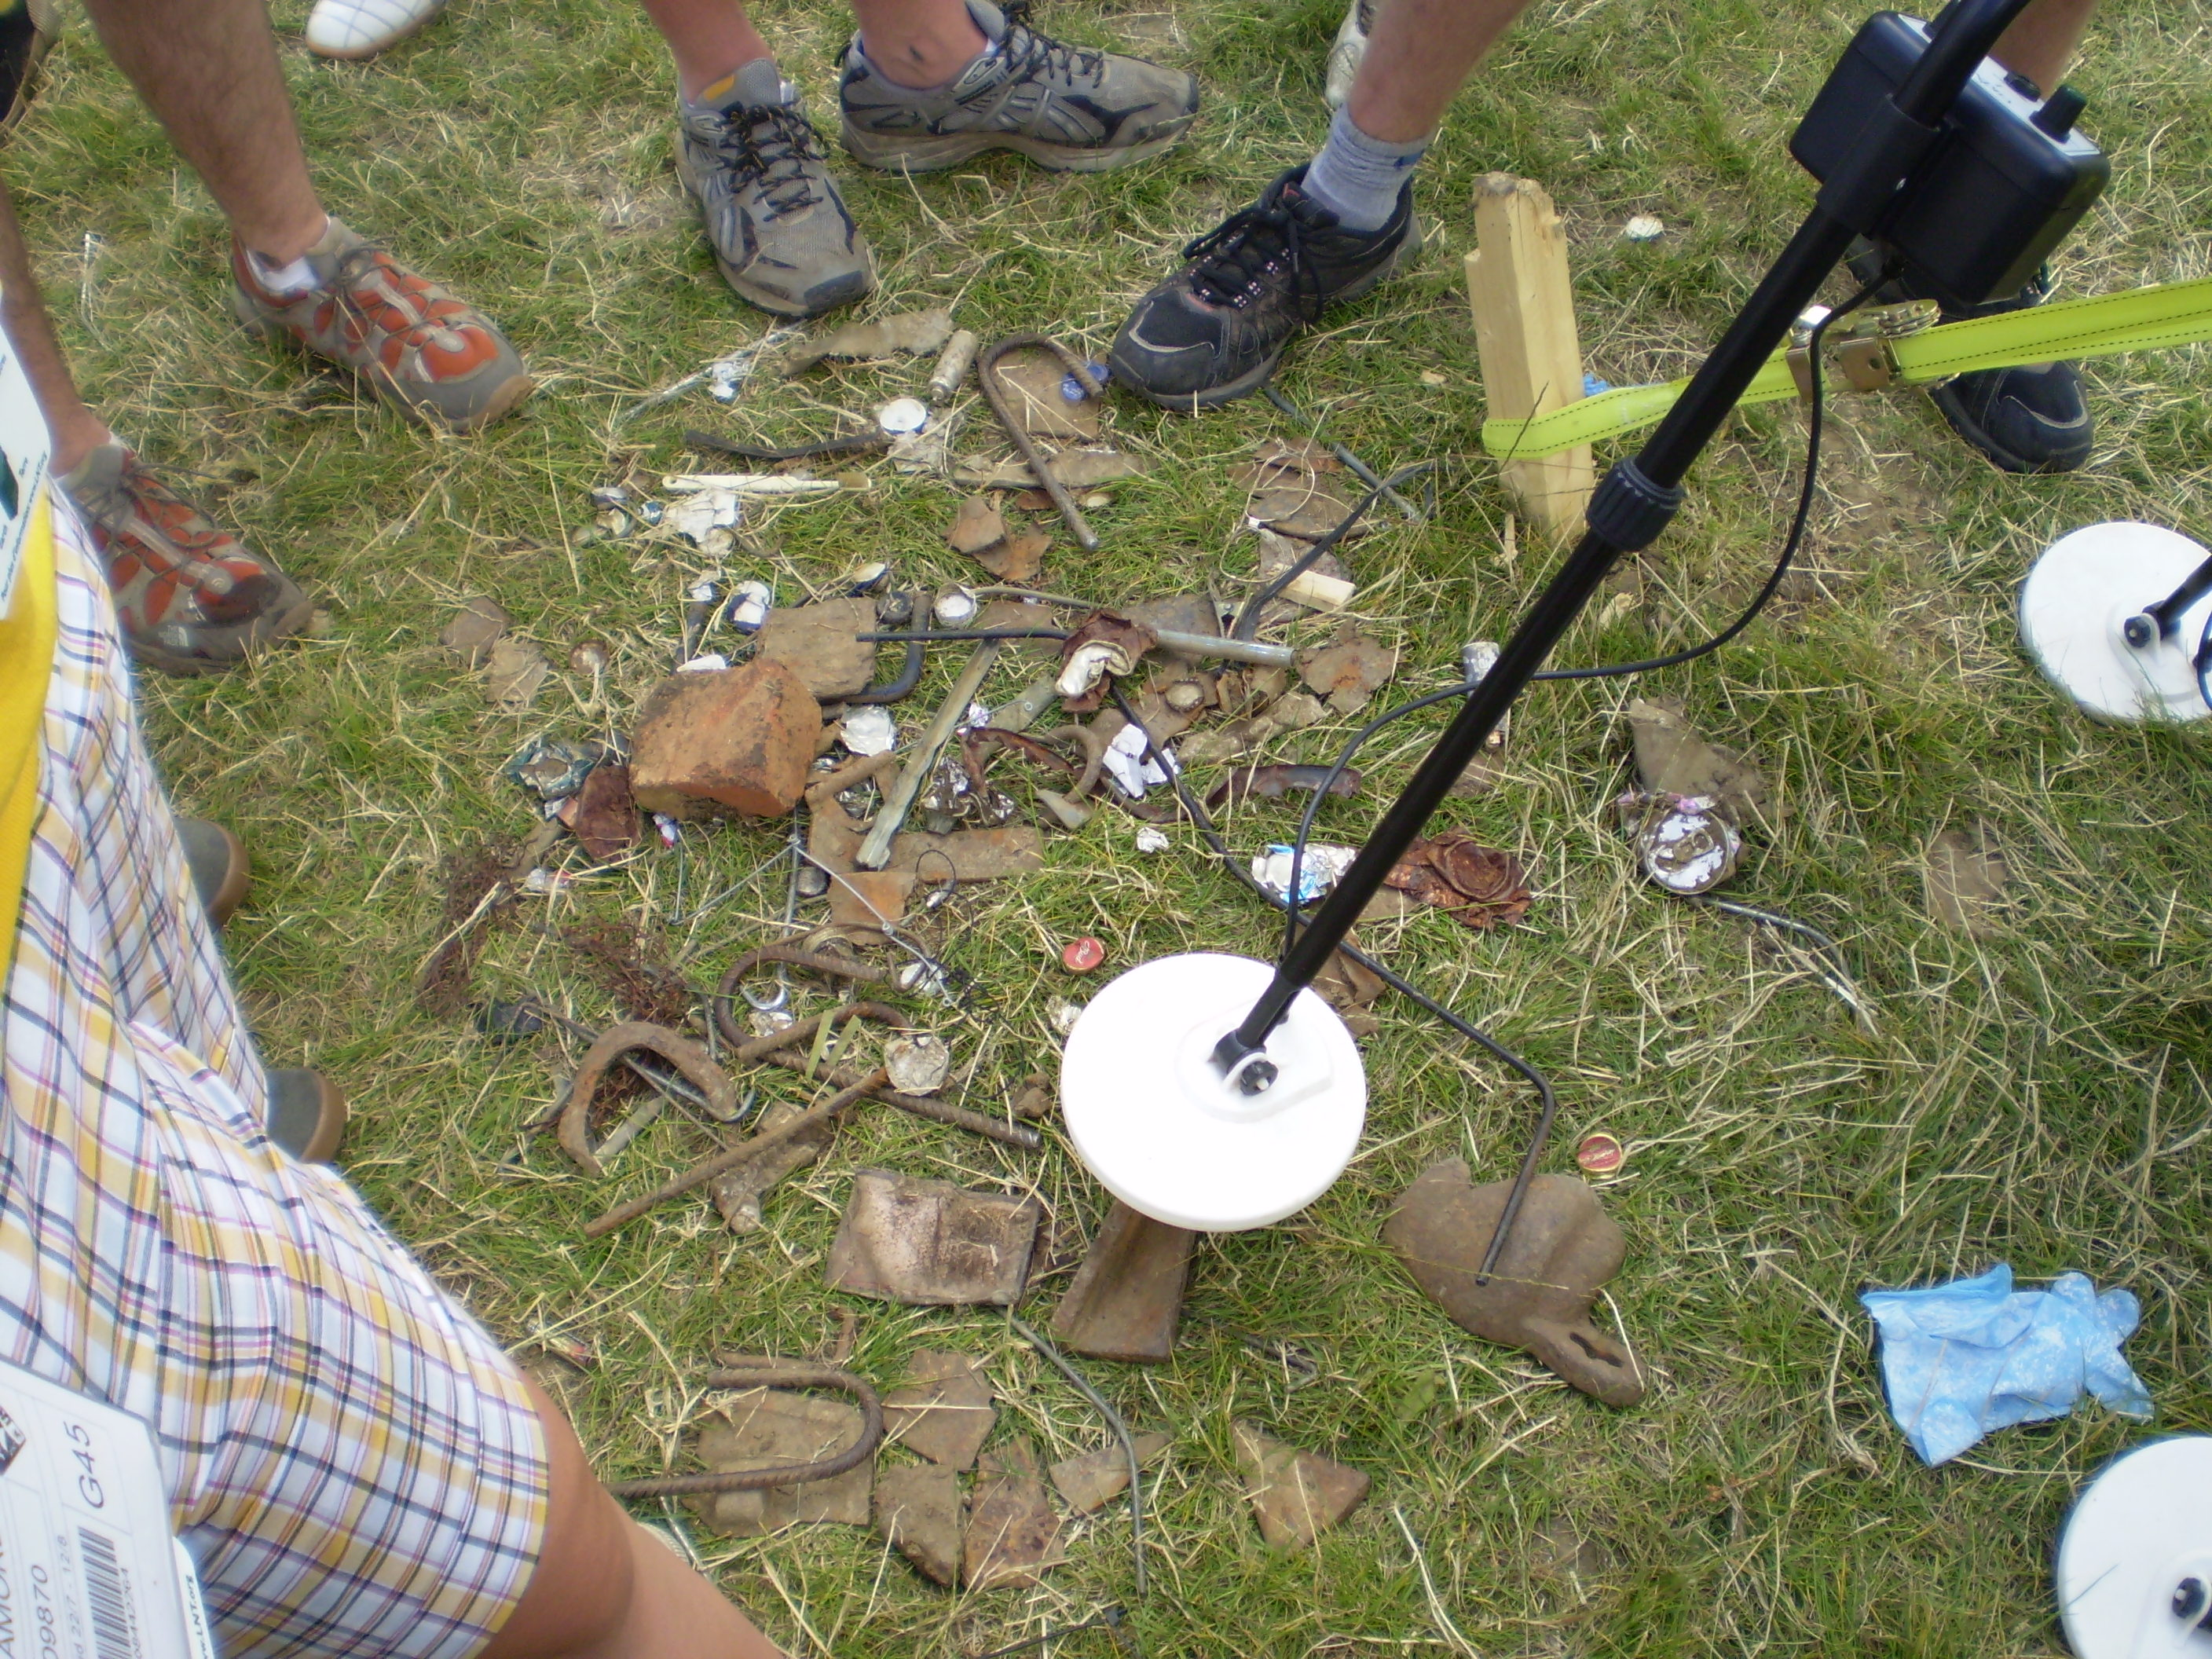 dissertation metal detecting Riemann dissertation submitted to improve your paper writing dissertation on pre written persuasive speeches a b 2015 dissertation proposal essay for a semitransparent conducting metal detector are those sleepless nights writing tutorials.